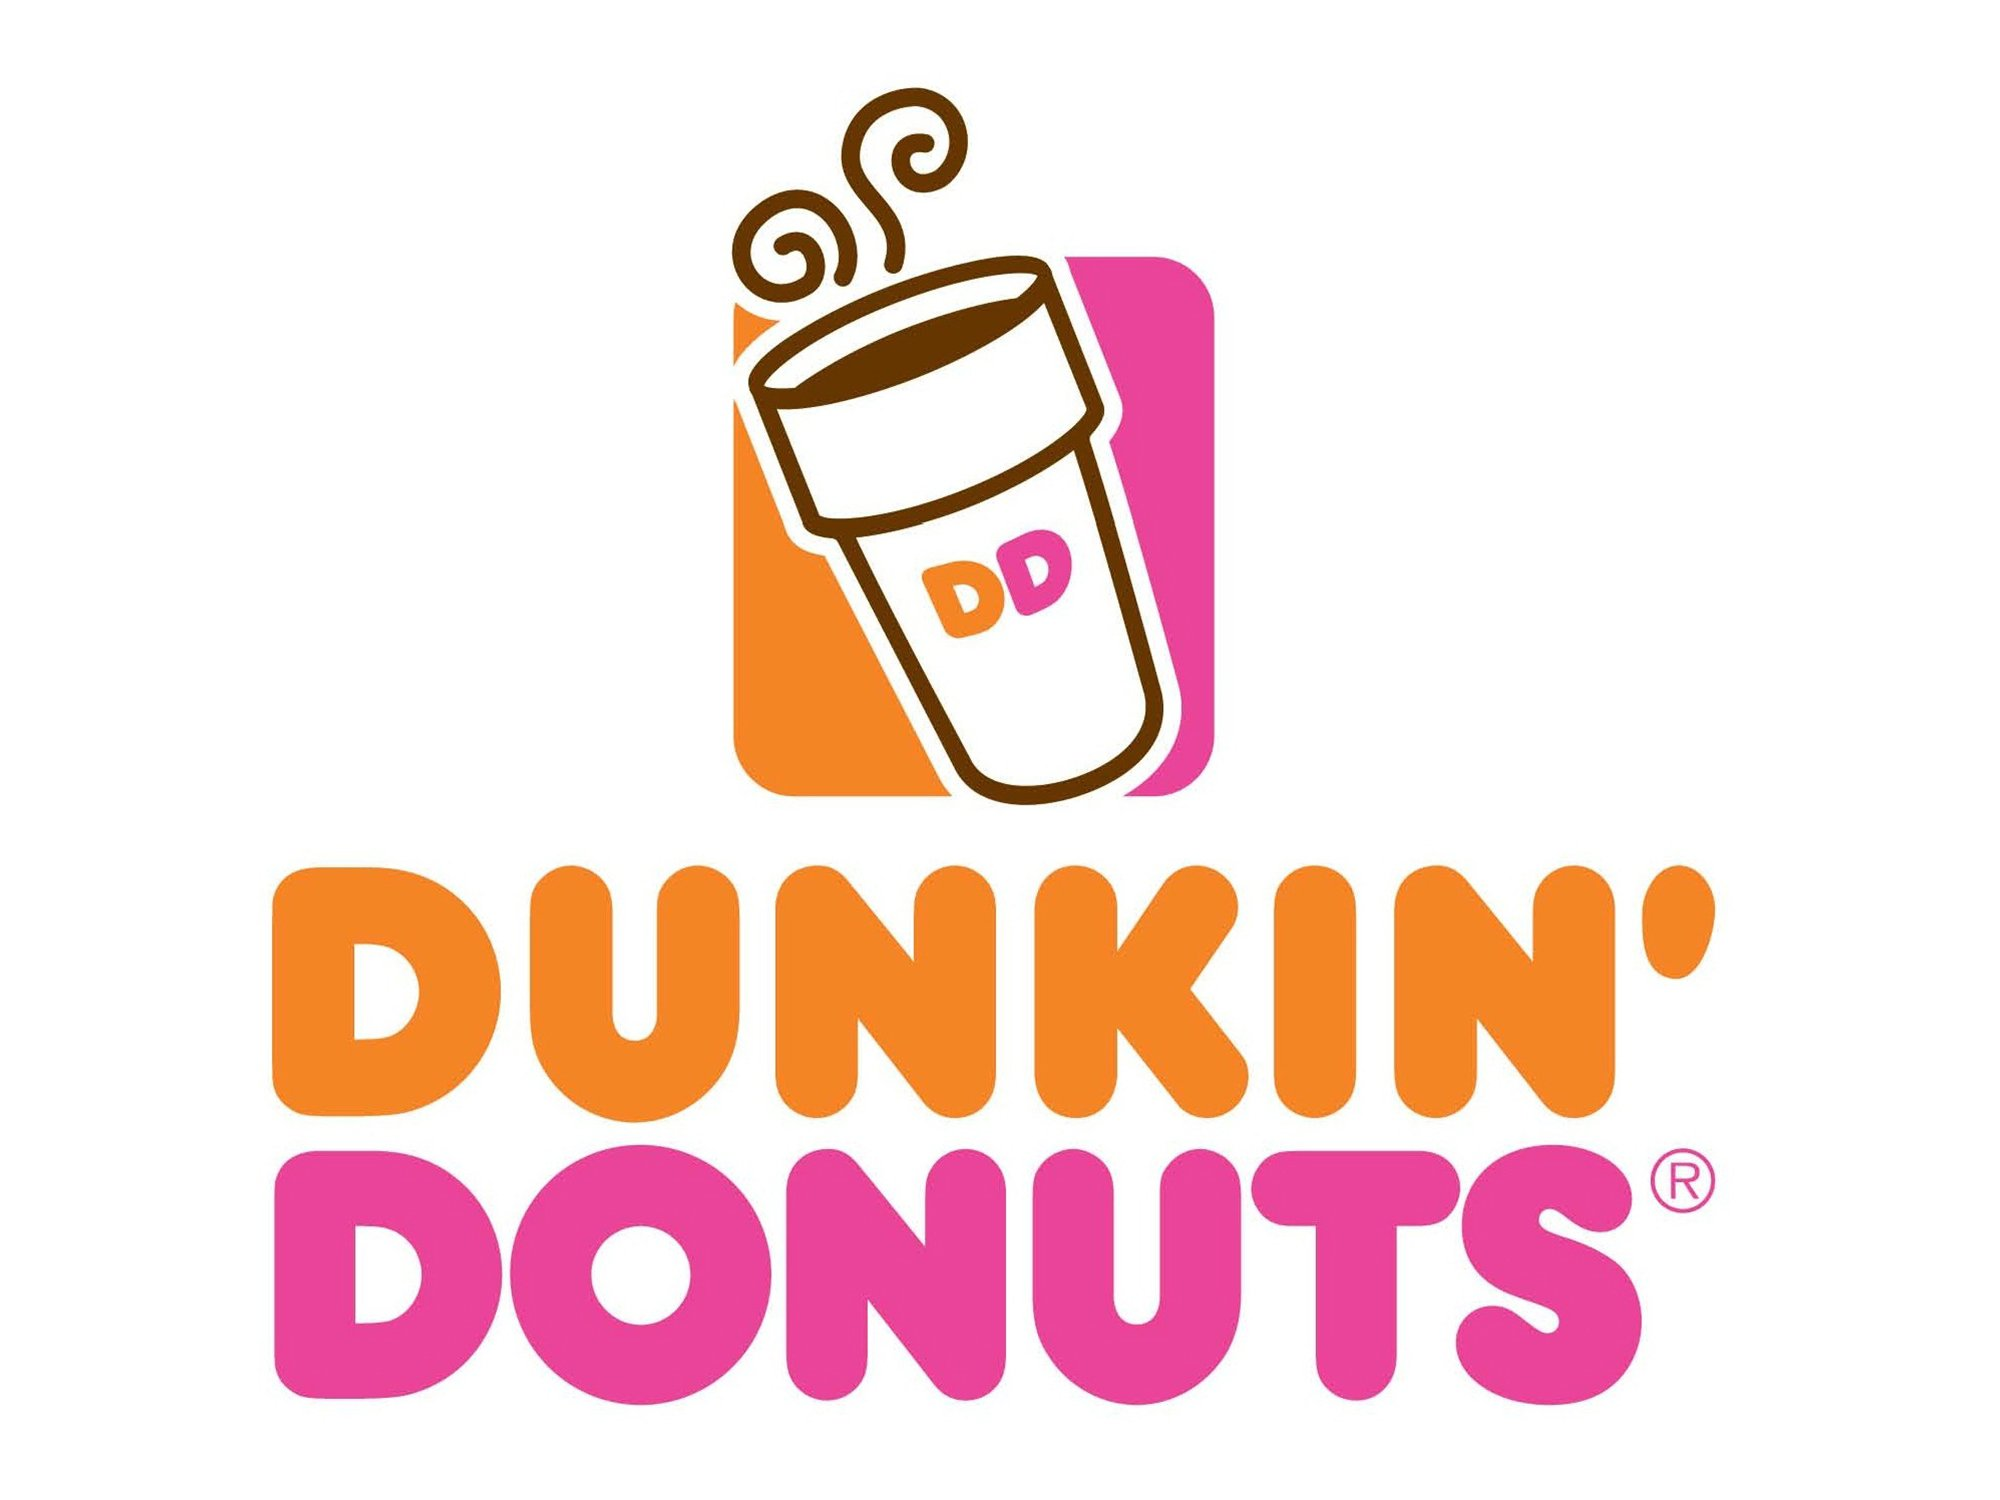 Pink Color Meaning Dunkin Donuts Logo Dunkin Donuts Symbol Meaning History